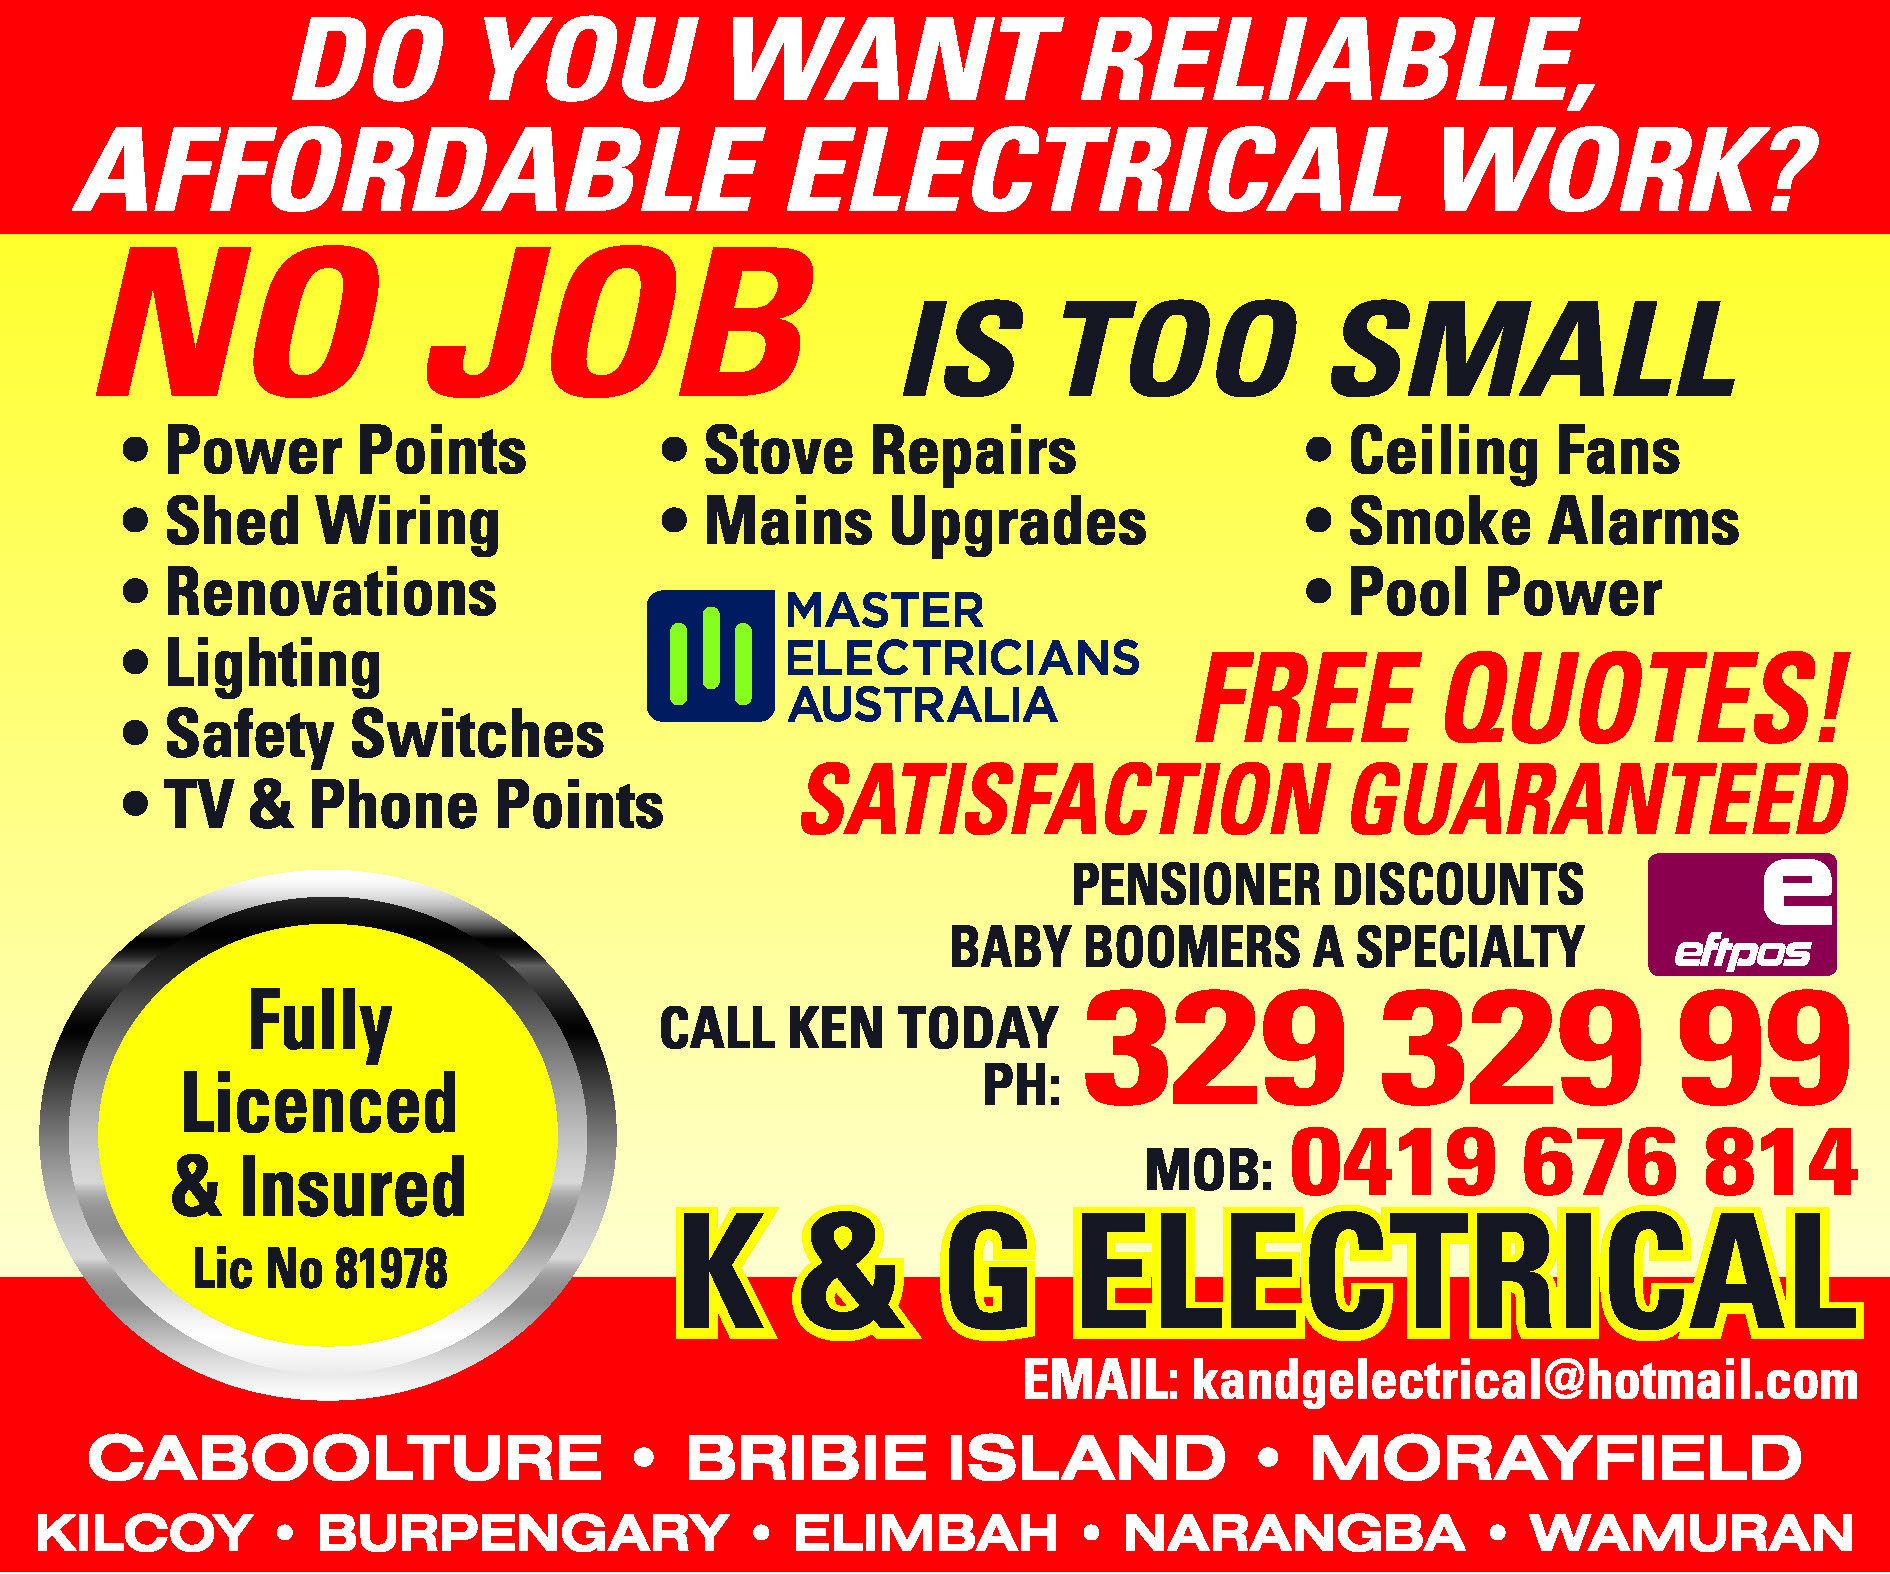 K & G Electrical - Electricians